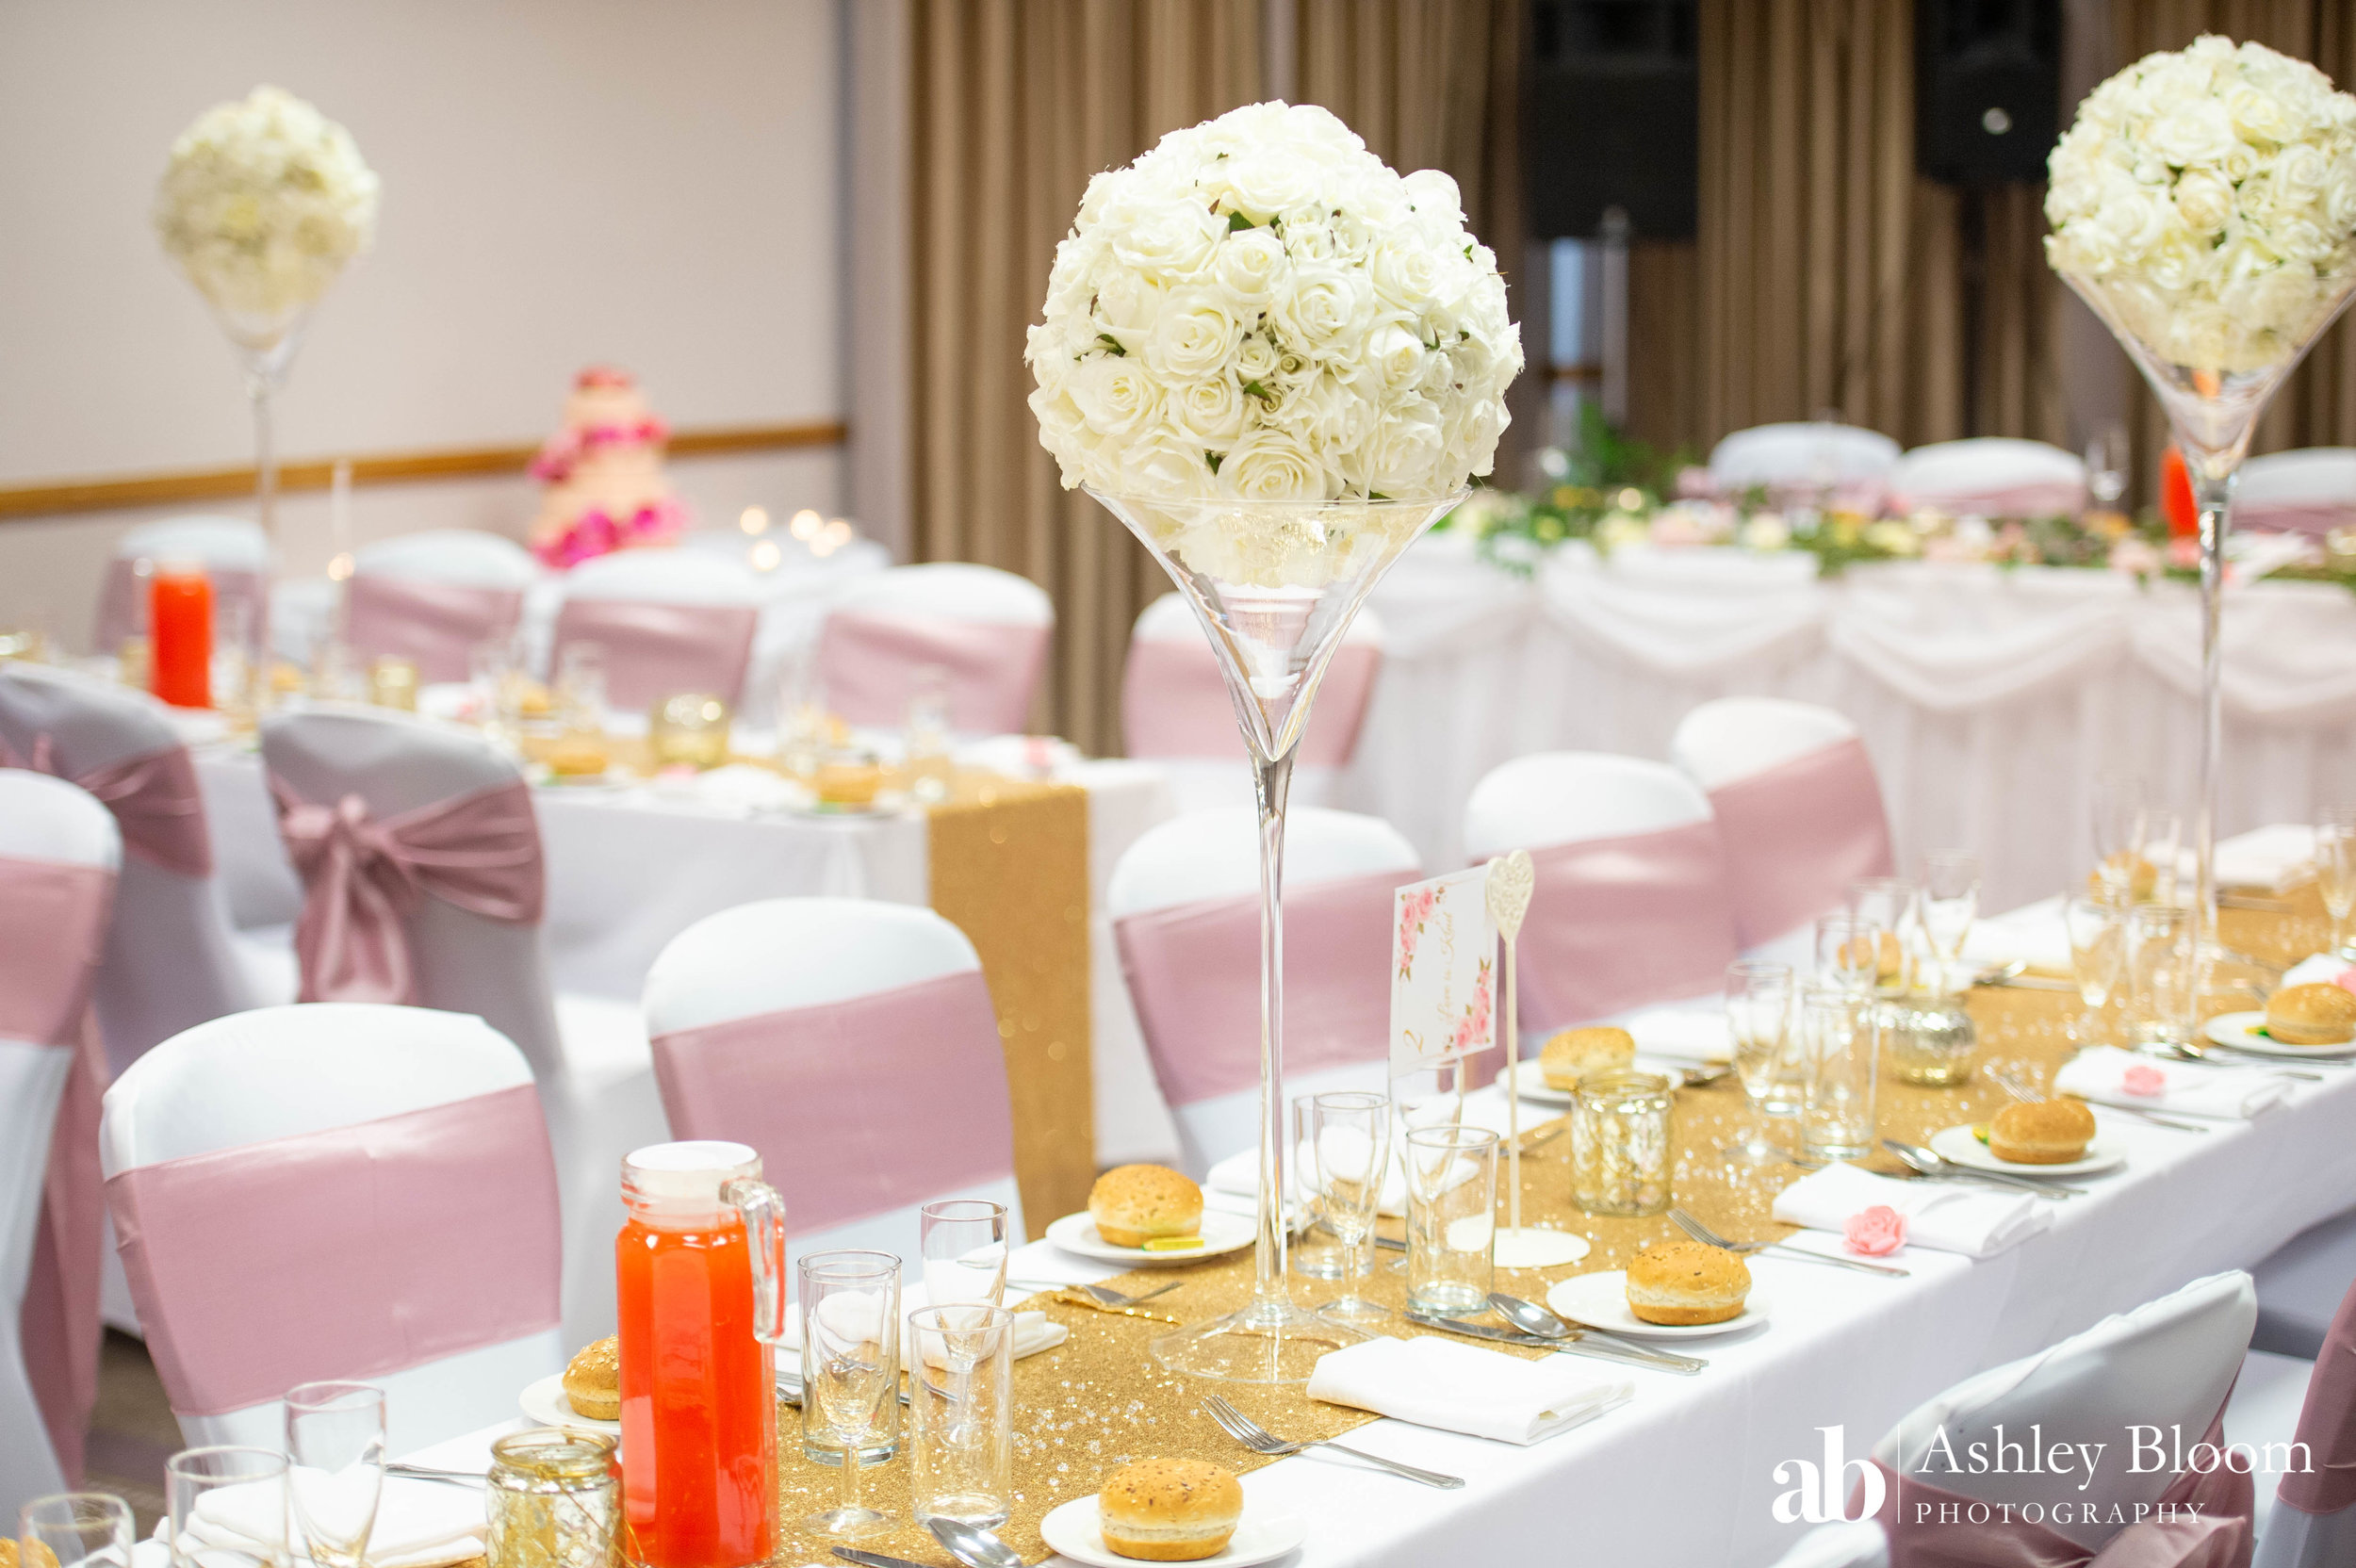 Prince & Chantai's Wedding-159.jpg